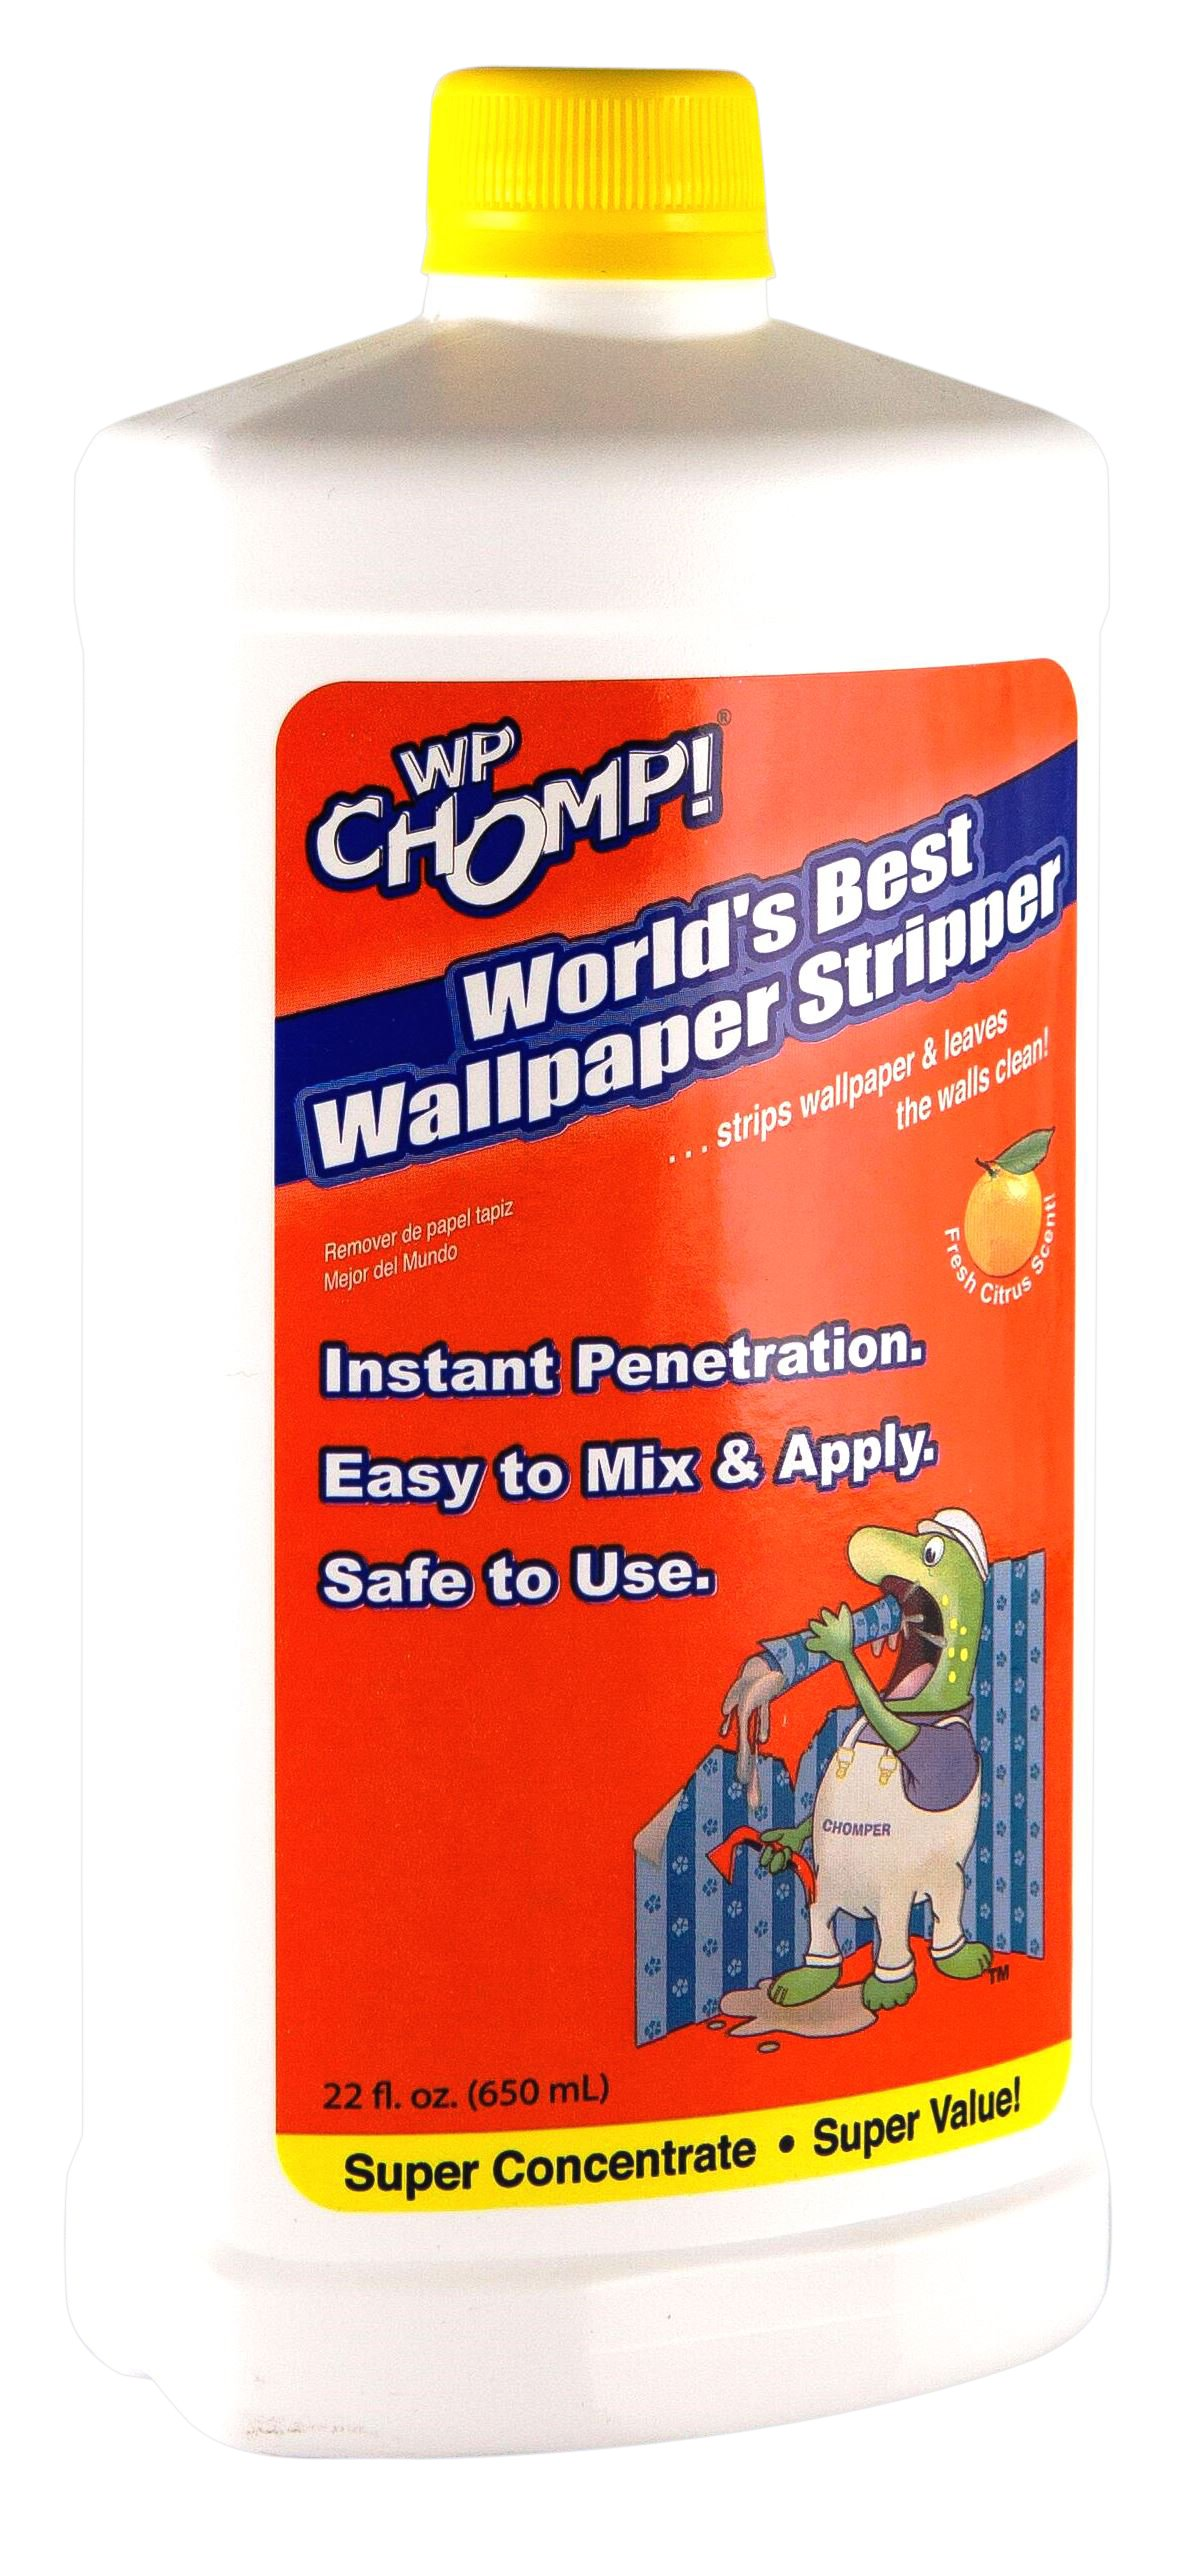 WP Chomp World's Best Wallpaper Stripper: and Sticky Paste Remover, Citrus Scent 22oz Super Concentrate by WP Chomp